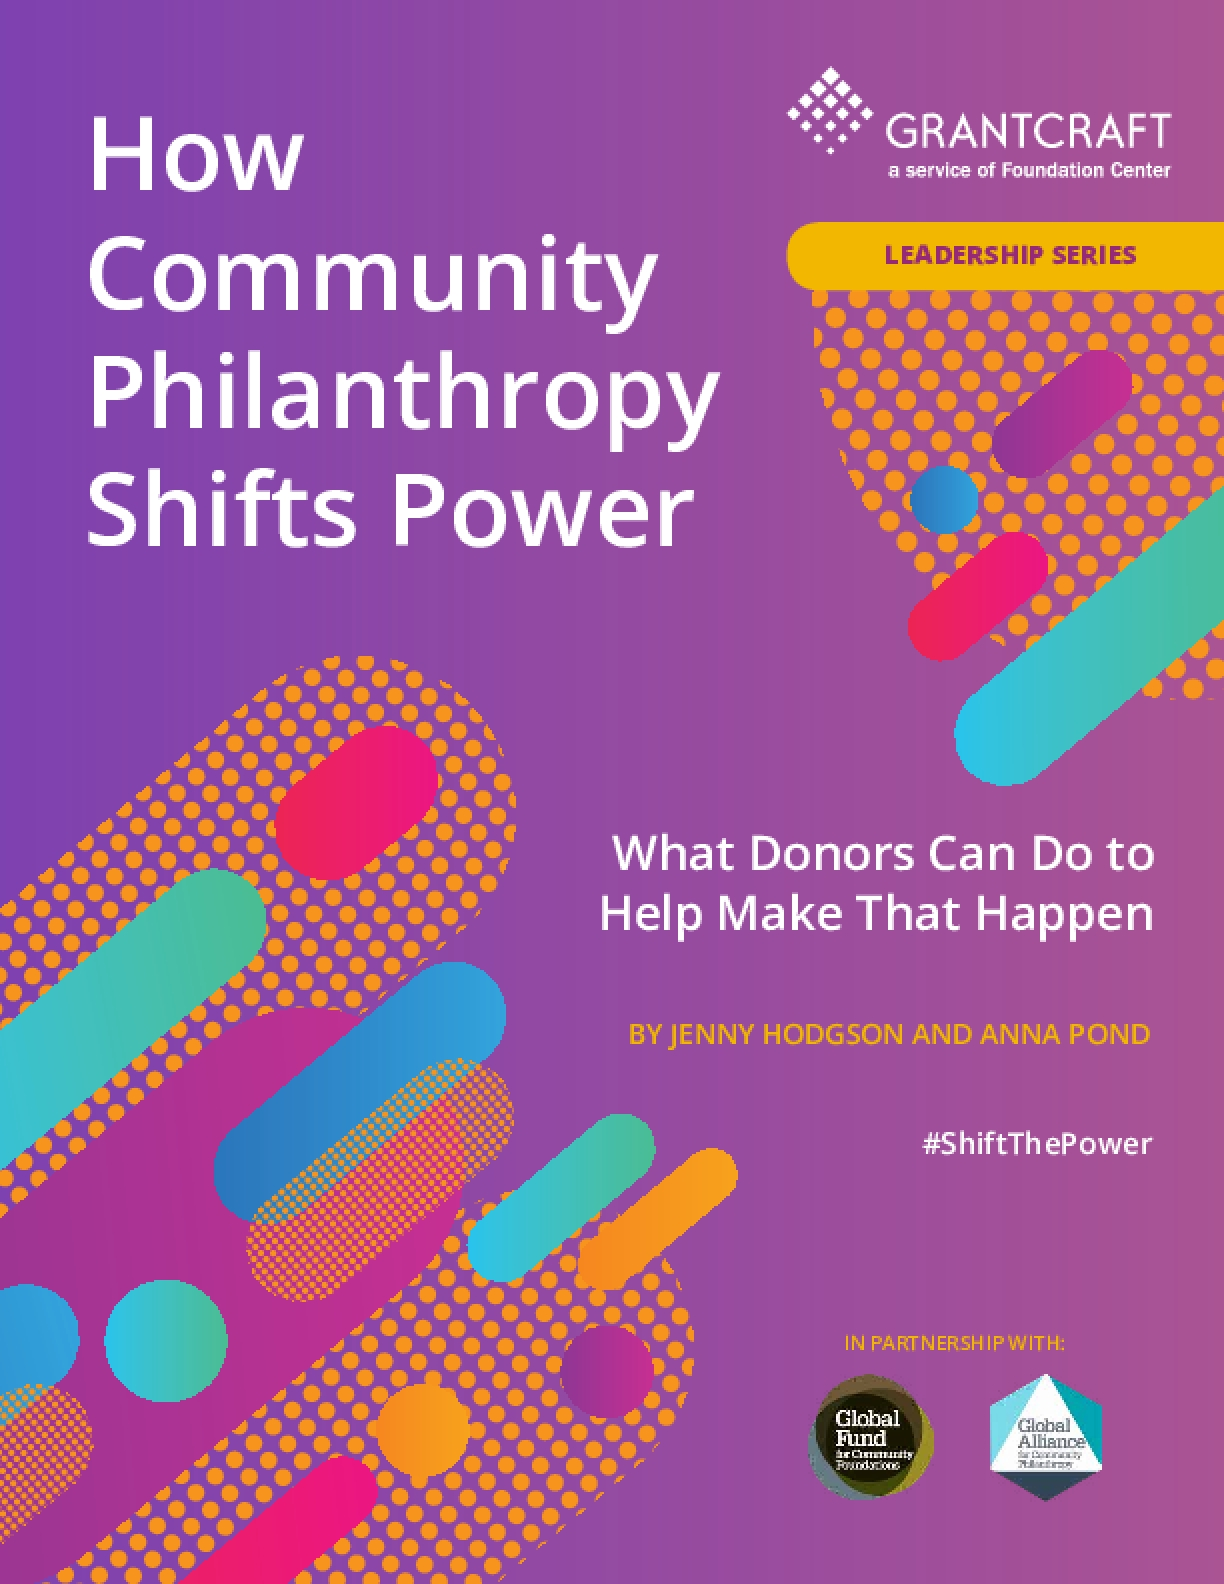 How Community Philanthropy Shifts Power: What Donors Can Do to Help Make That Happen